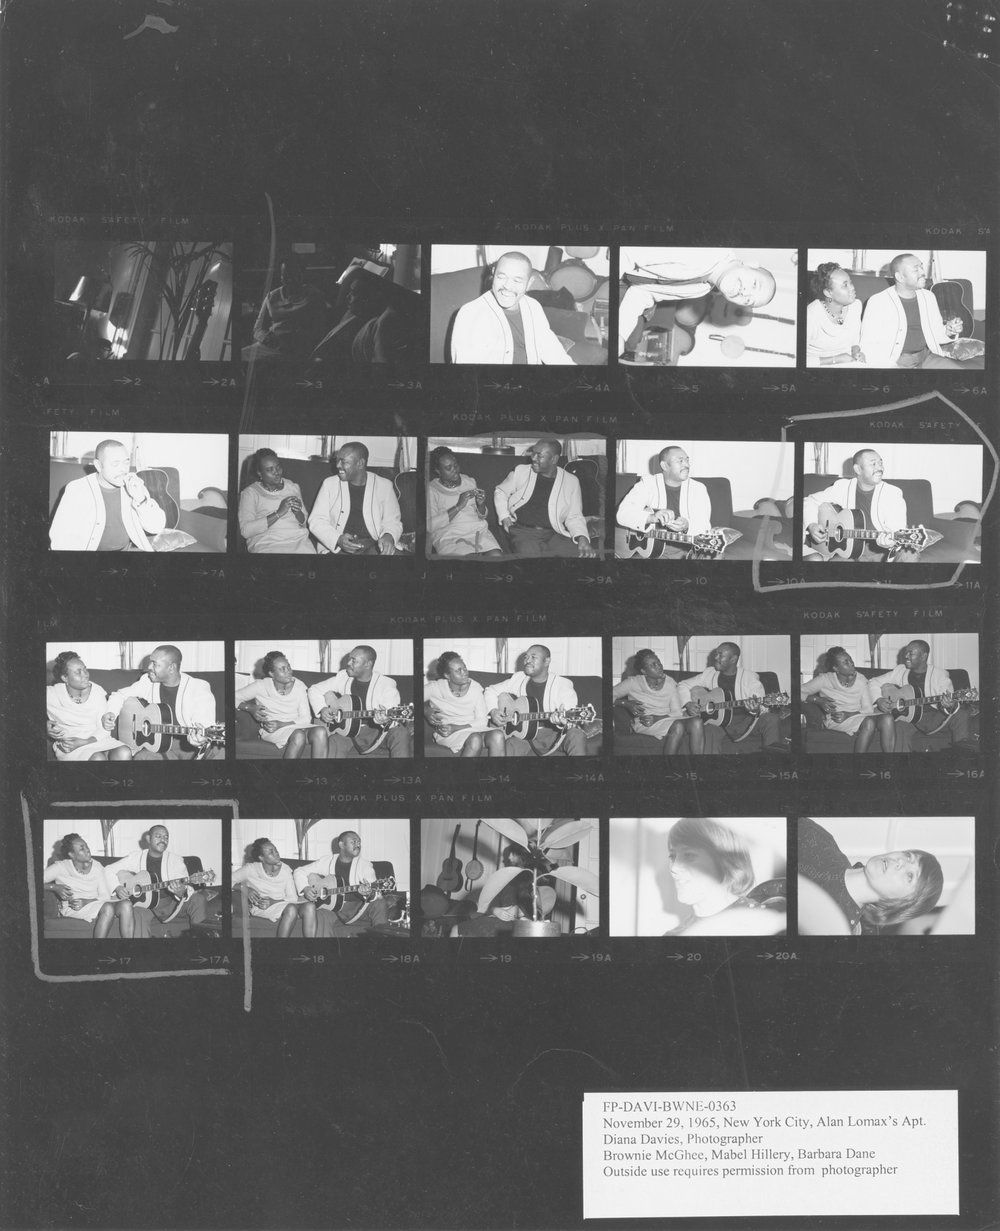 This contact sheet is one in a series taken by photographer Diana Davies that captures Mable Hillery alongside Bessie Jones of the Georgia Sea Island Singers, folk singer Barbara Dane, and blues guitarist Brownie McGhee at ethnomusicologist Alan Lomax's NYC apartment in late November 1965.